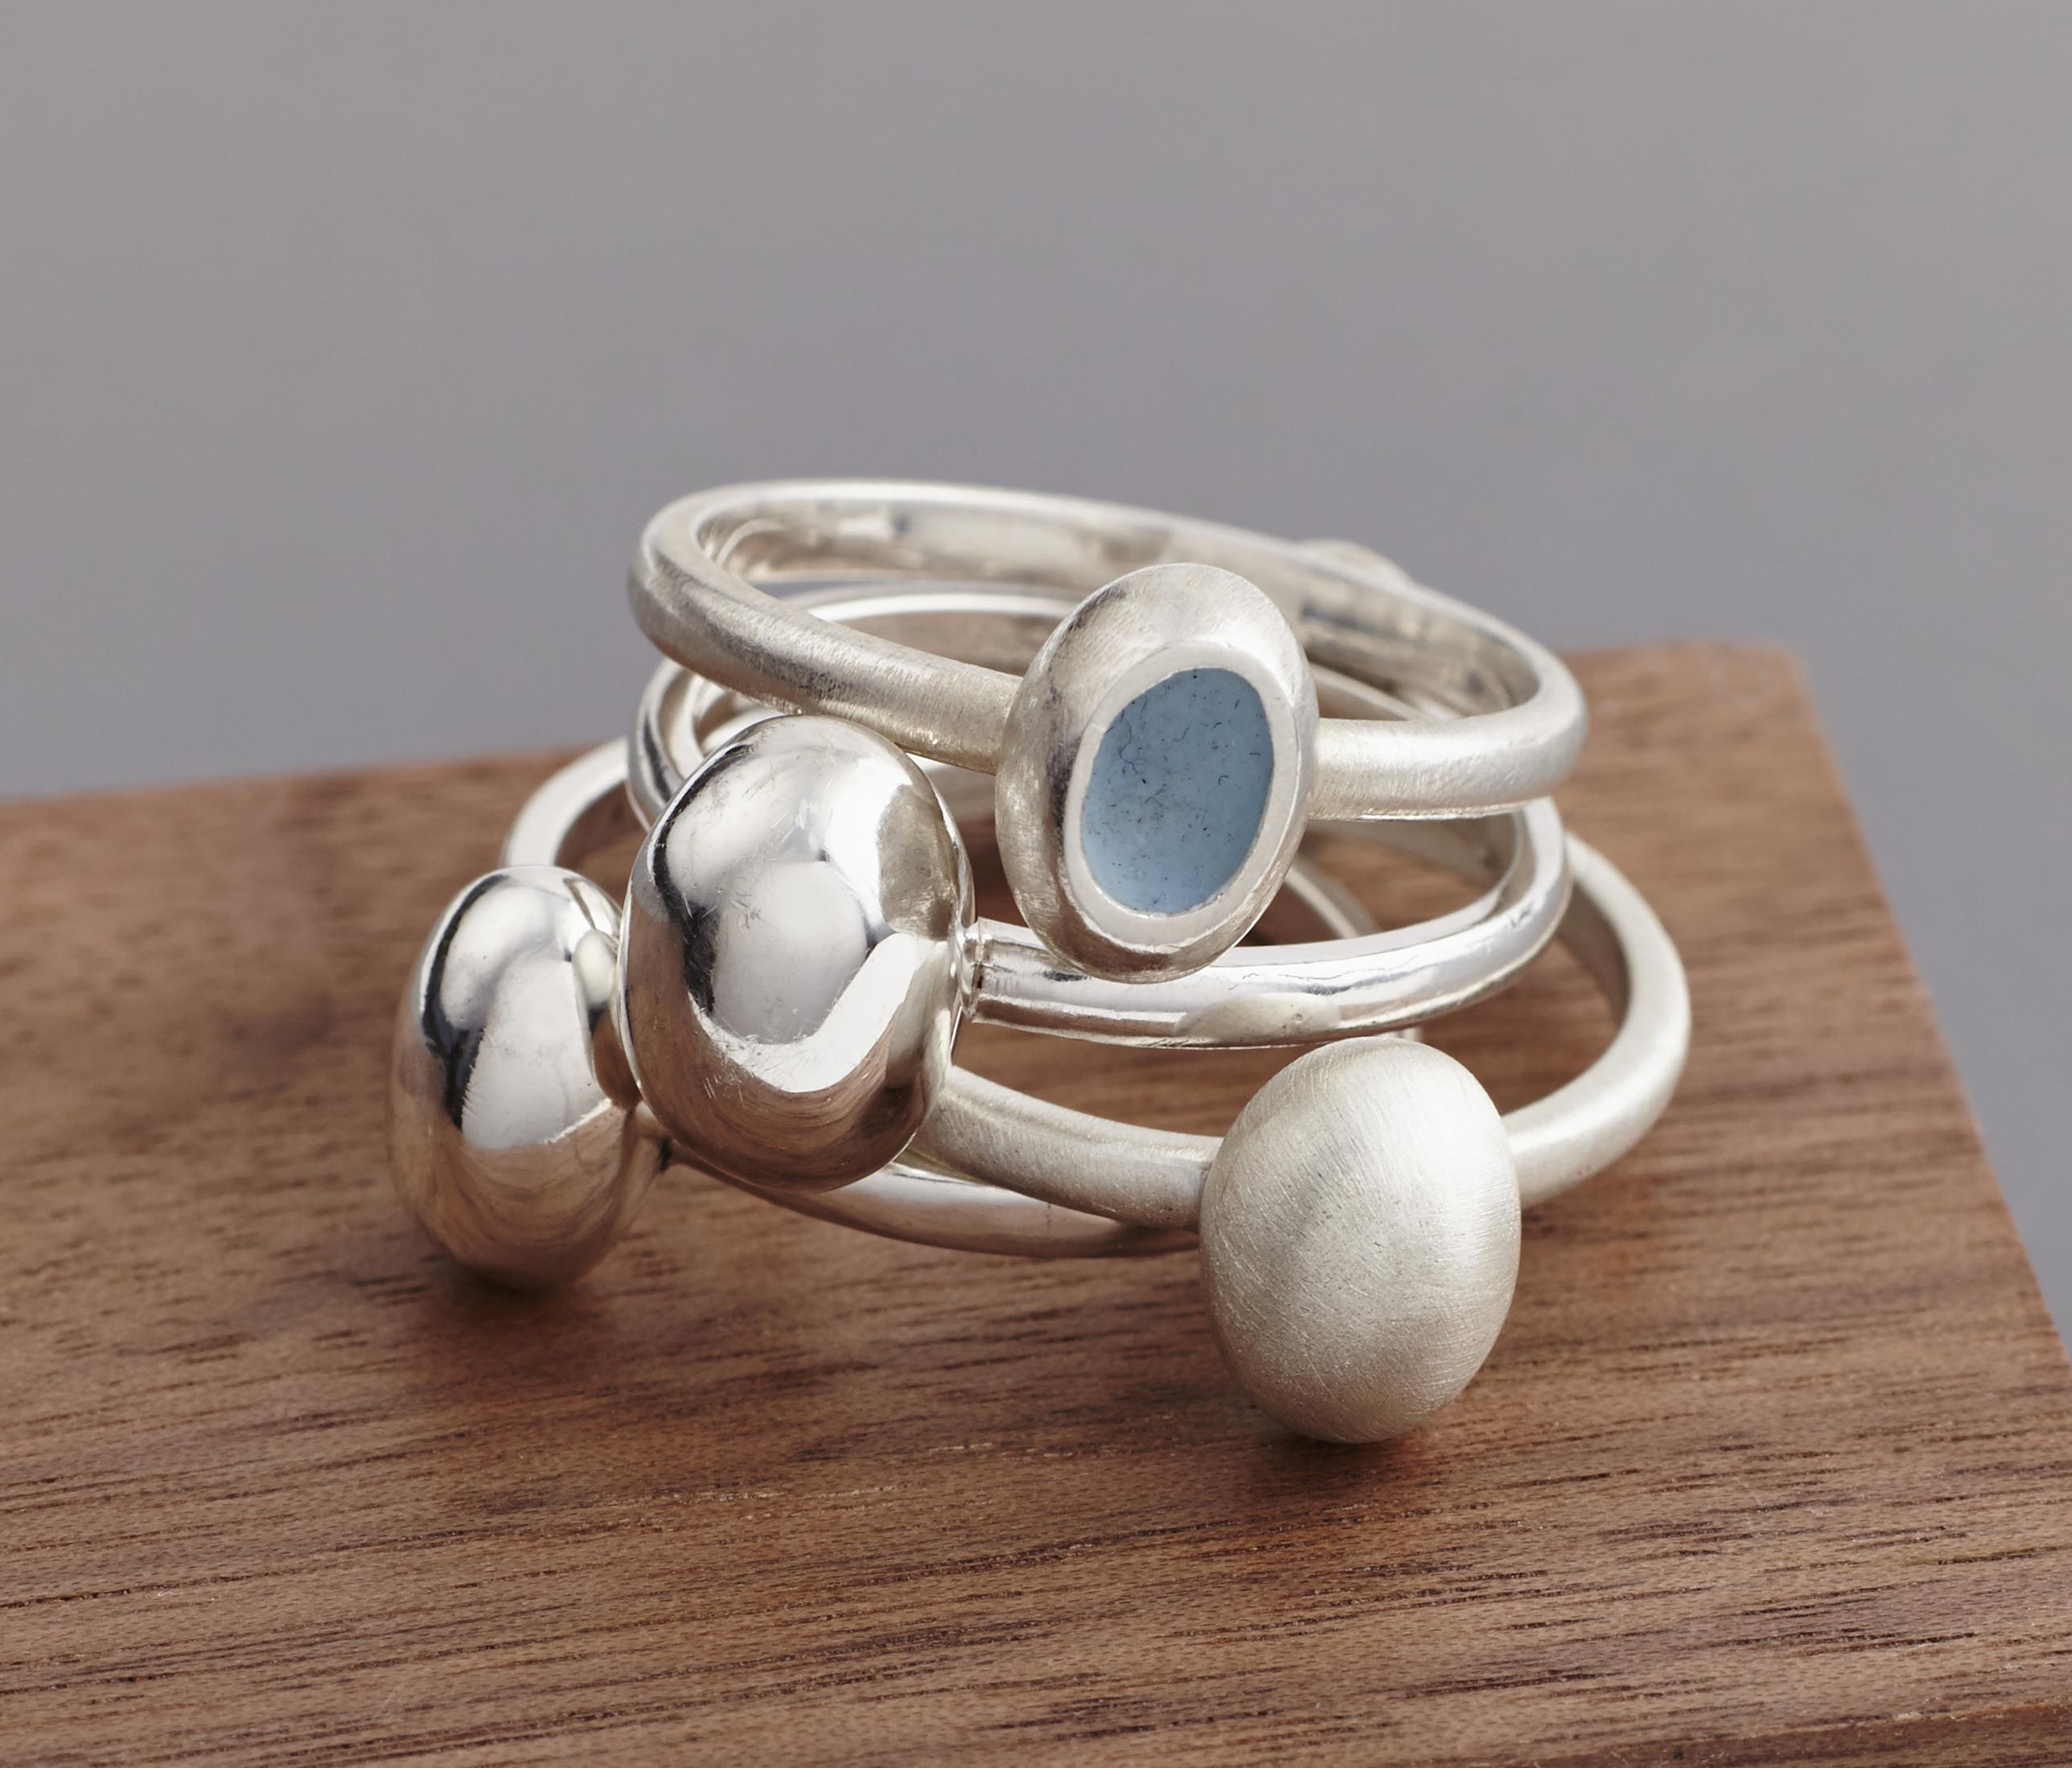 Oval pebble rings and oval fun cup enamel ring